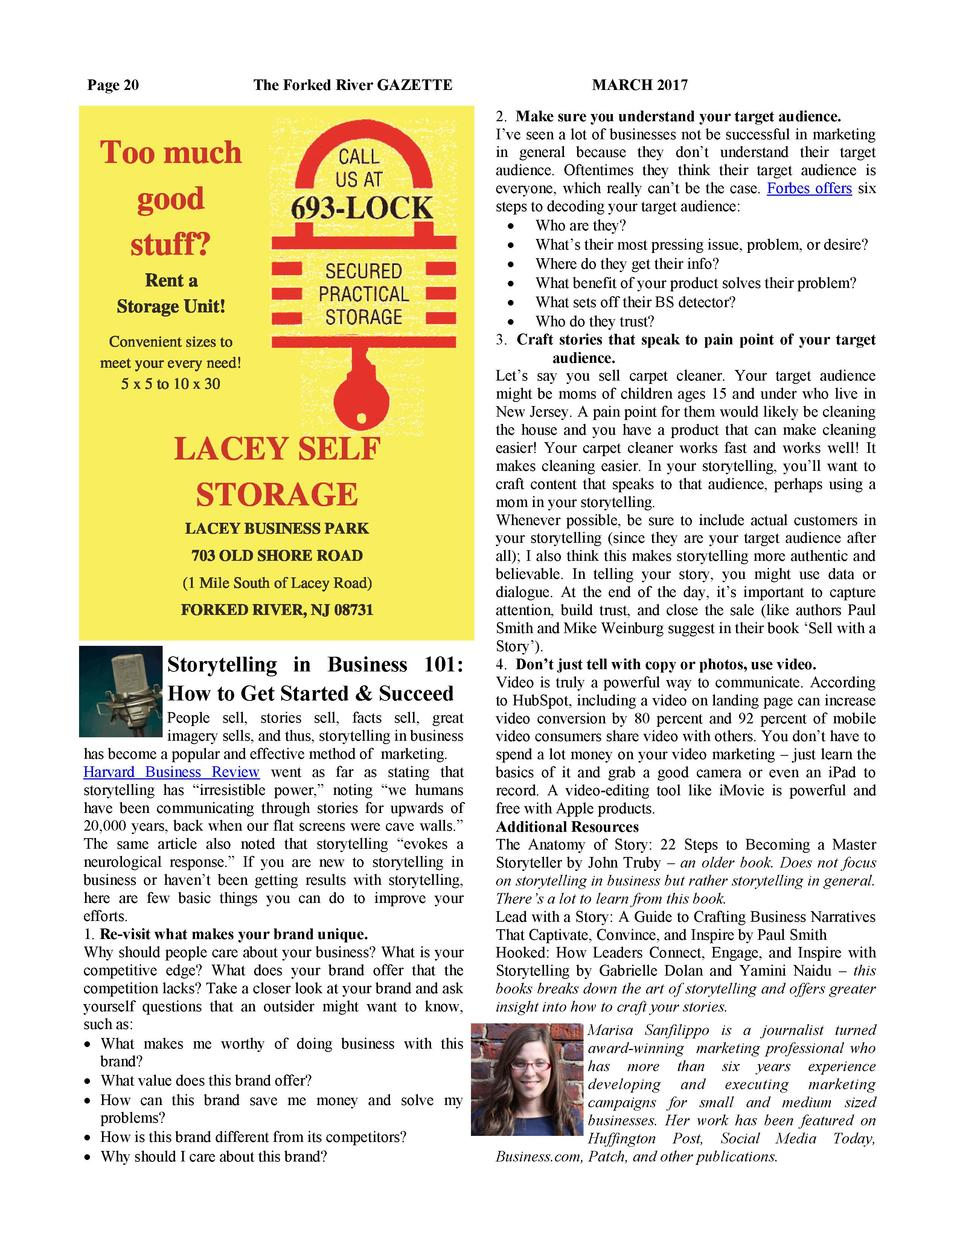 Page 20  The Forked River GAZETTE  Storytelling in Business 101  How to Get Started   Succeed People sell, stories sell, f...